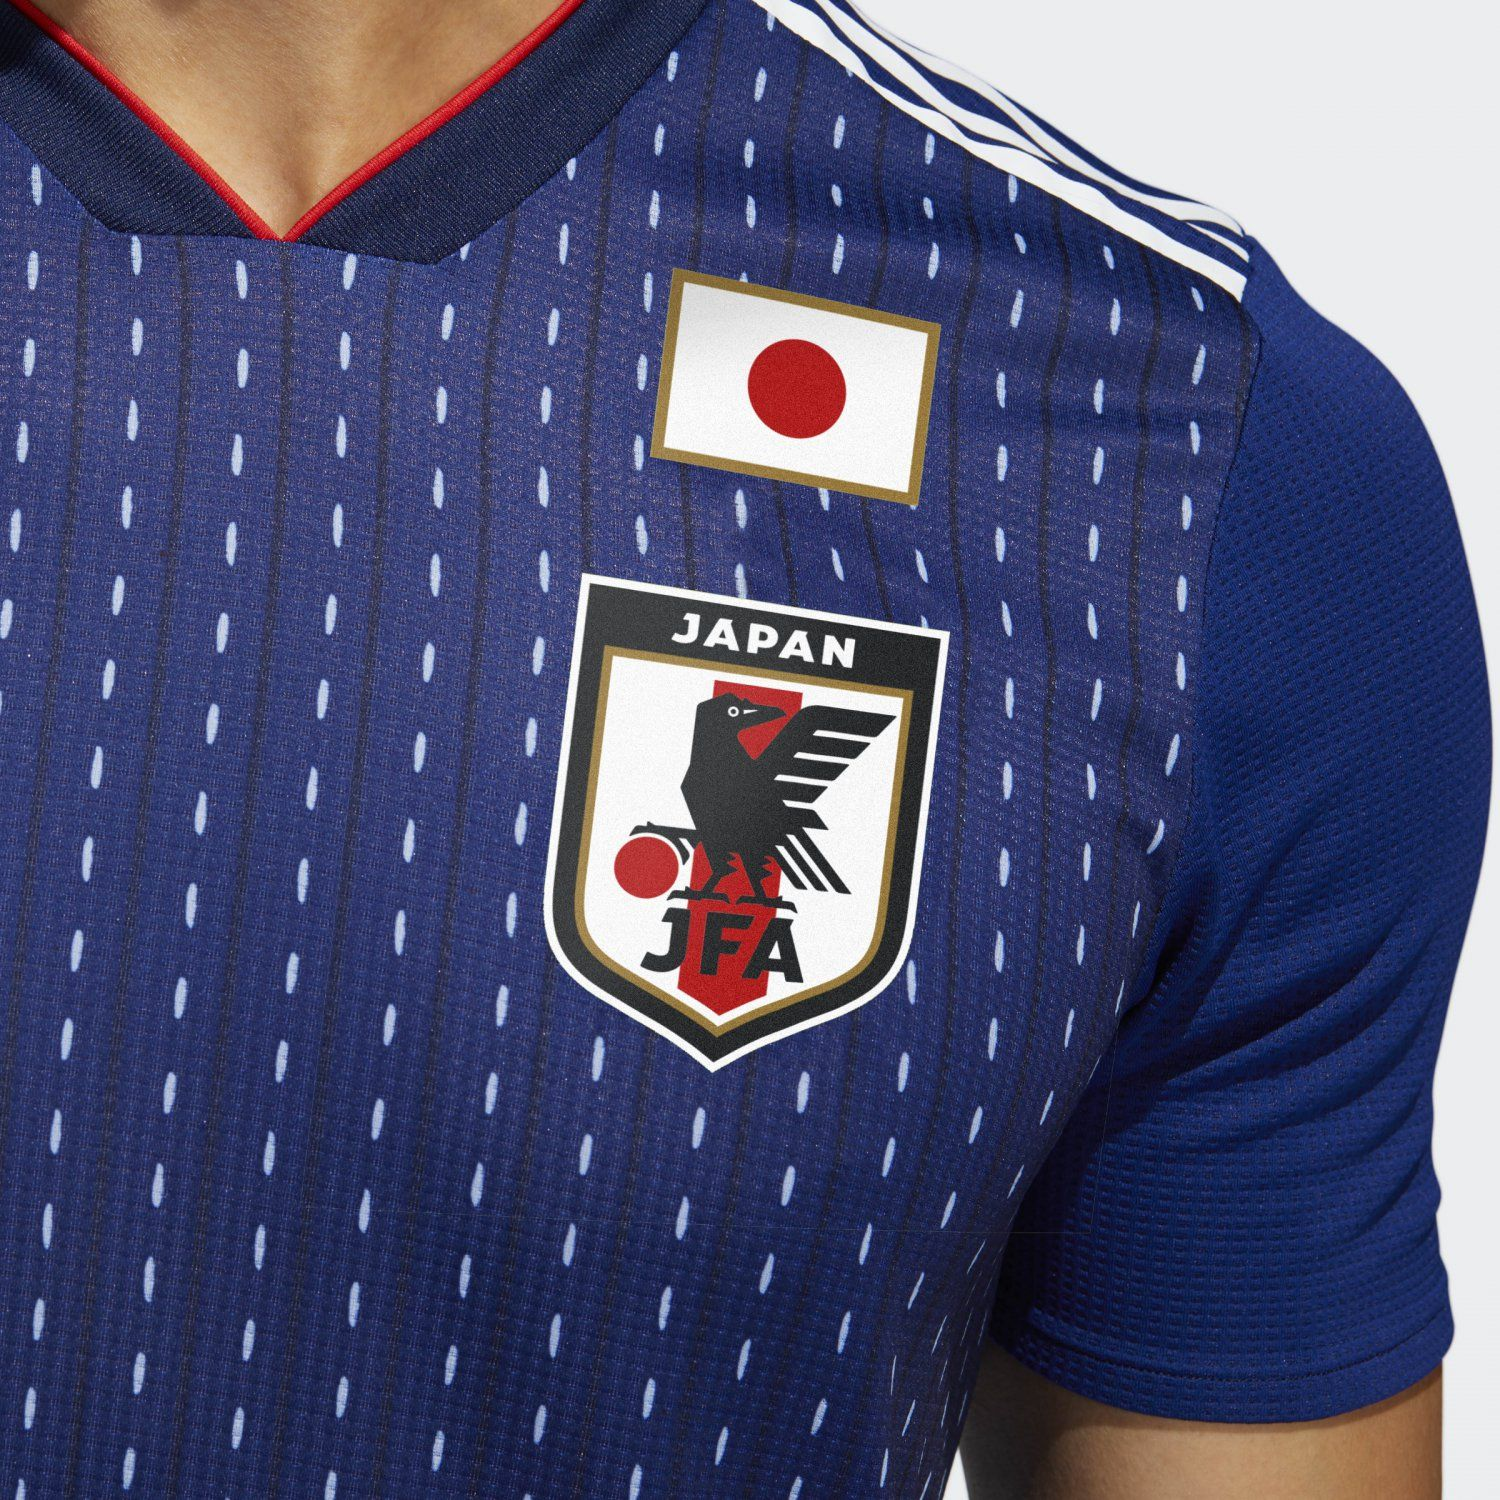 5fb36c8be The Adidas Japan 2018 World Cup home kit introduces a clean look with a  stripe pattern on the front.